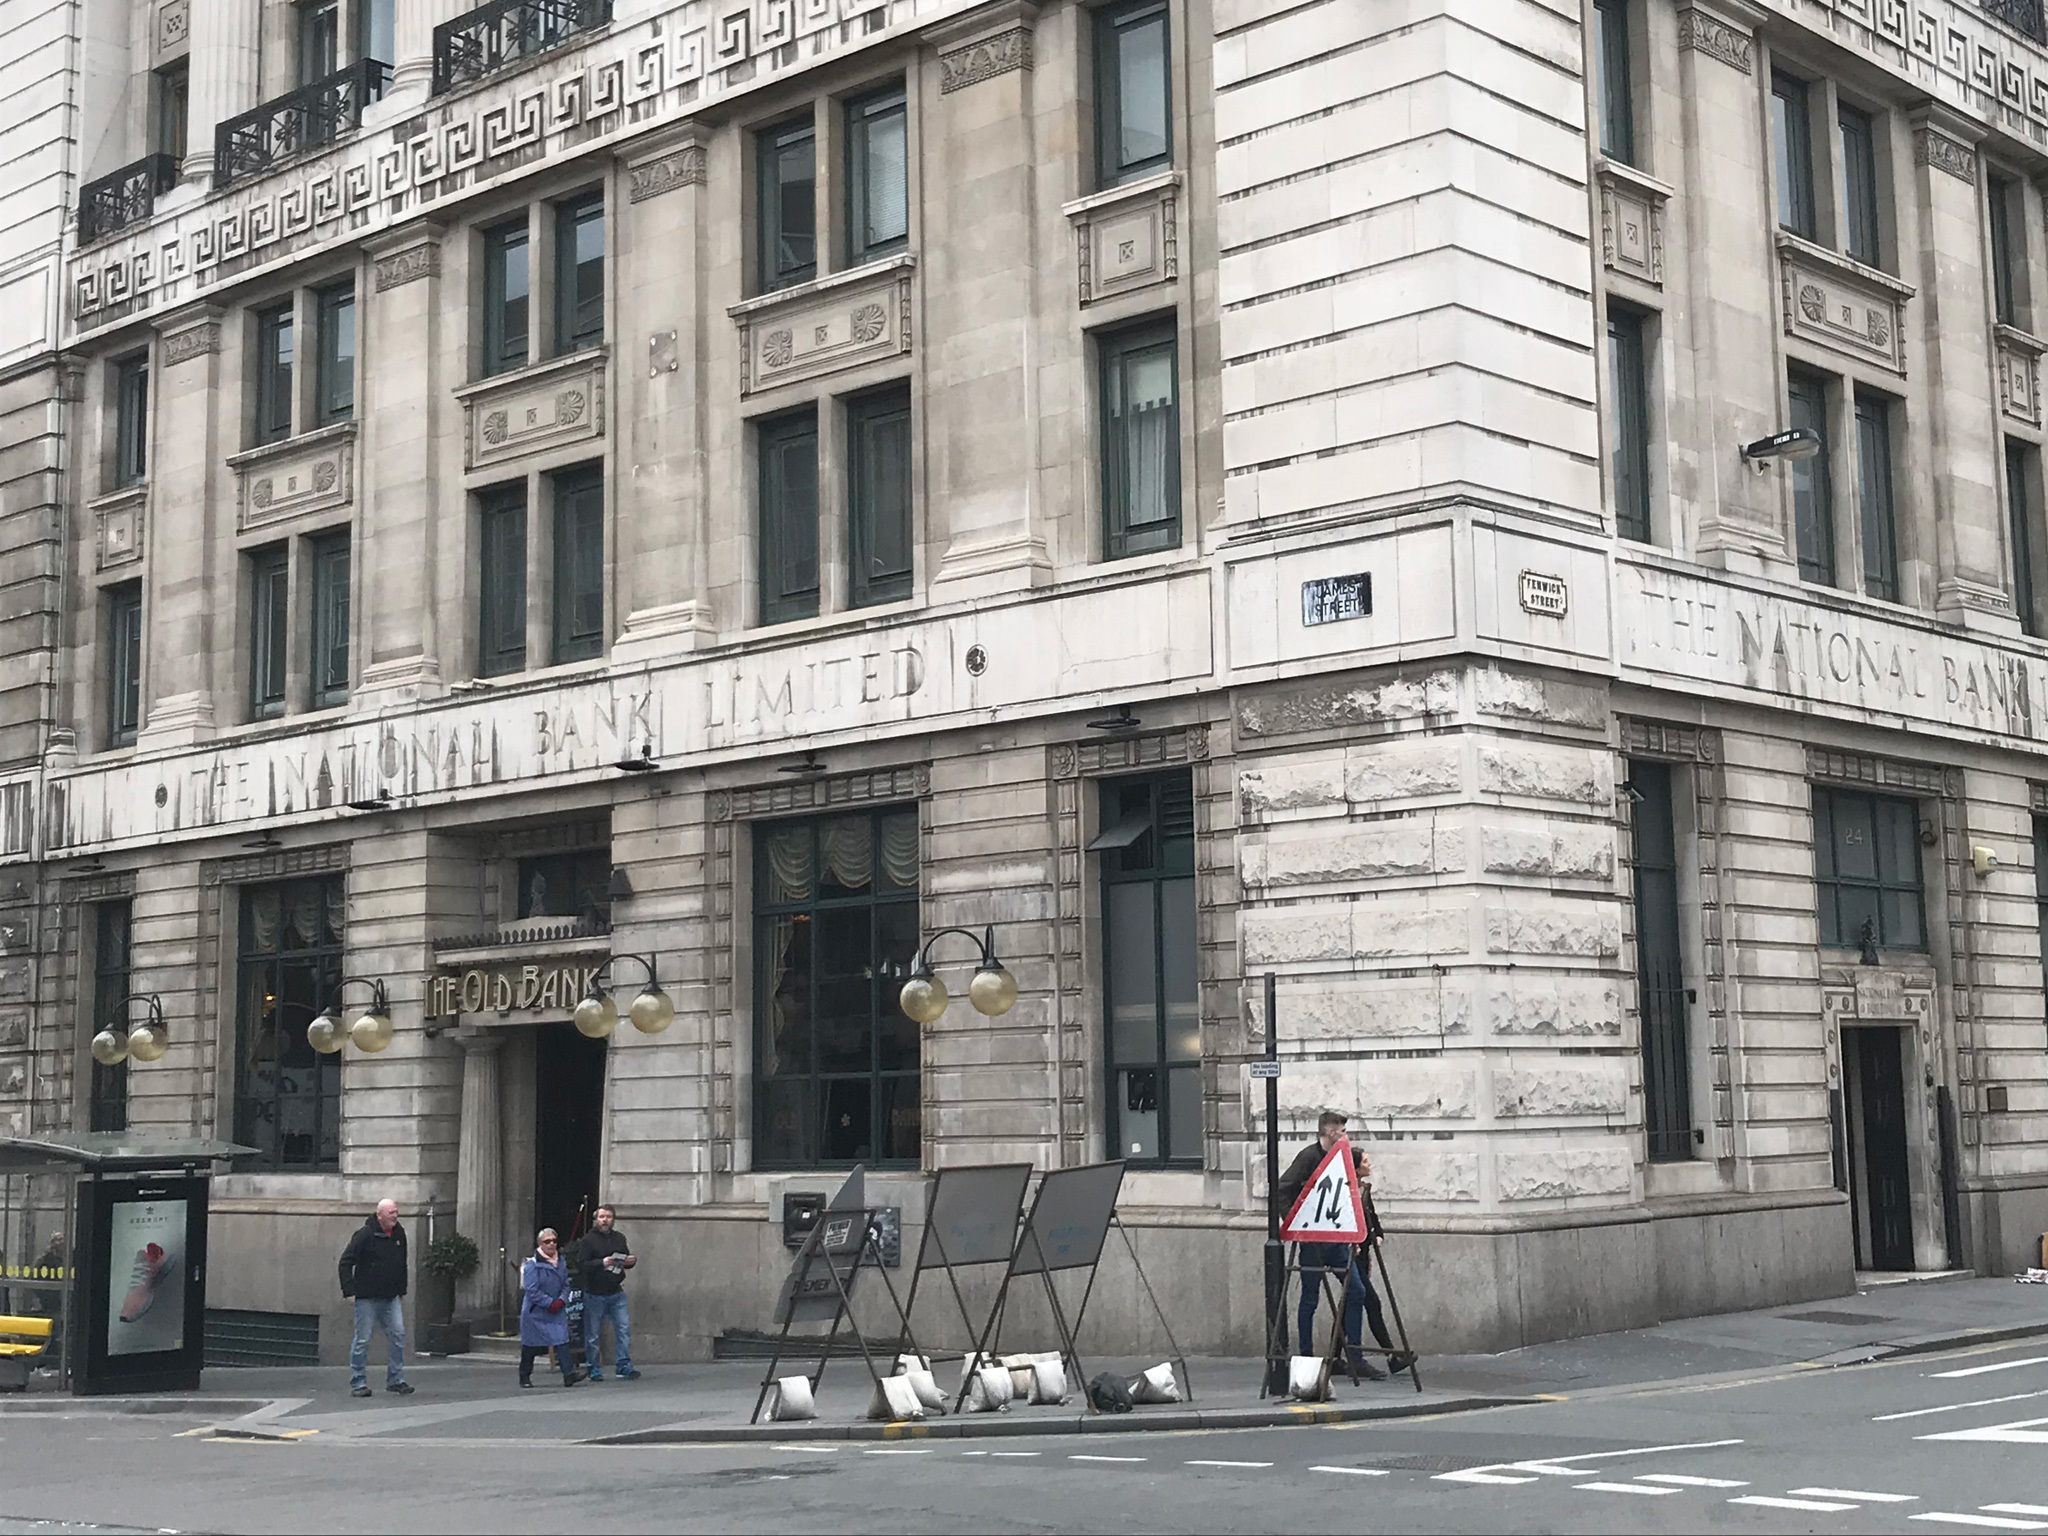 The exterior of the Old Bank in Liverpool